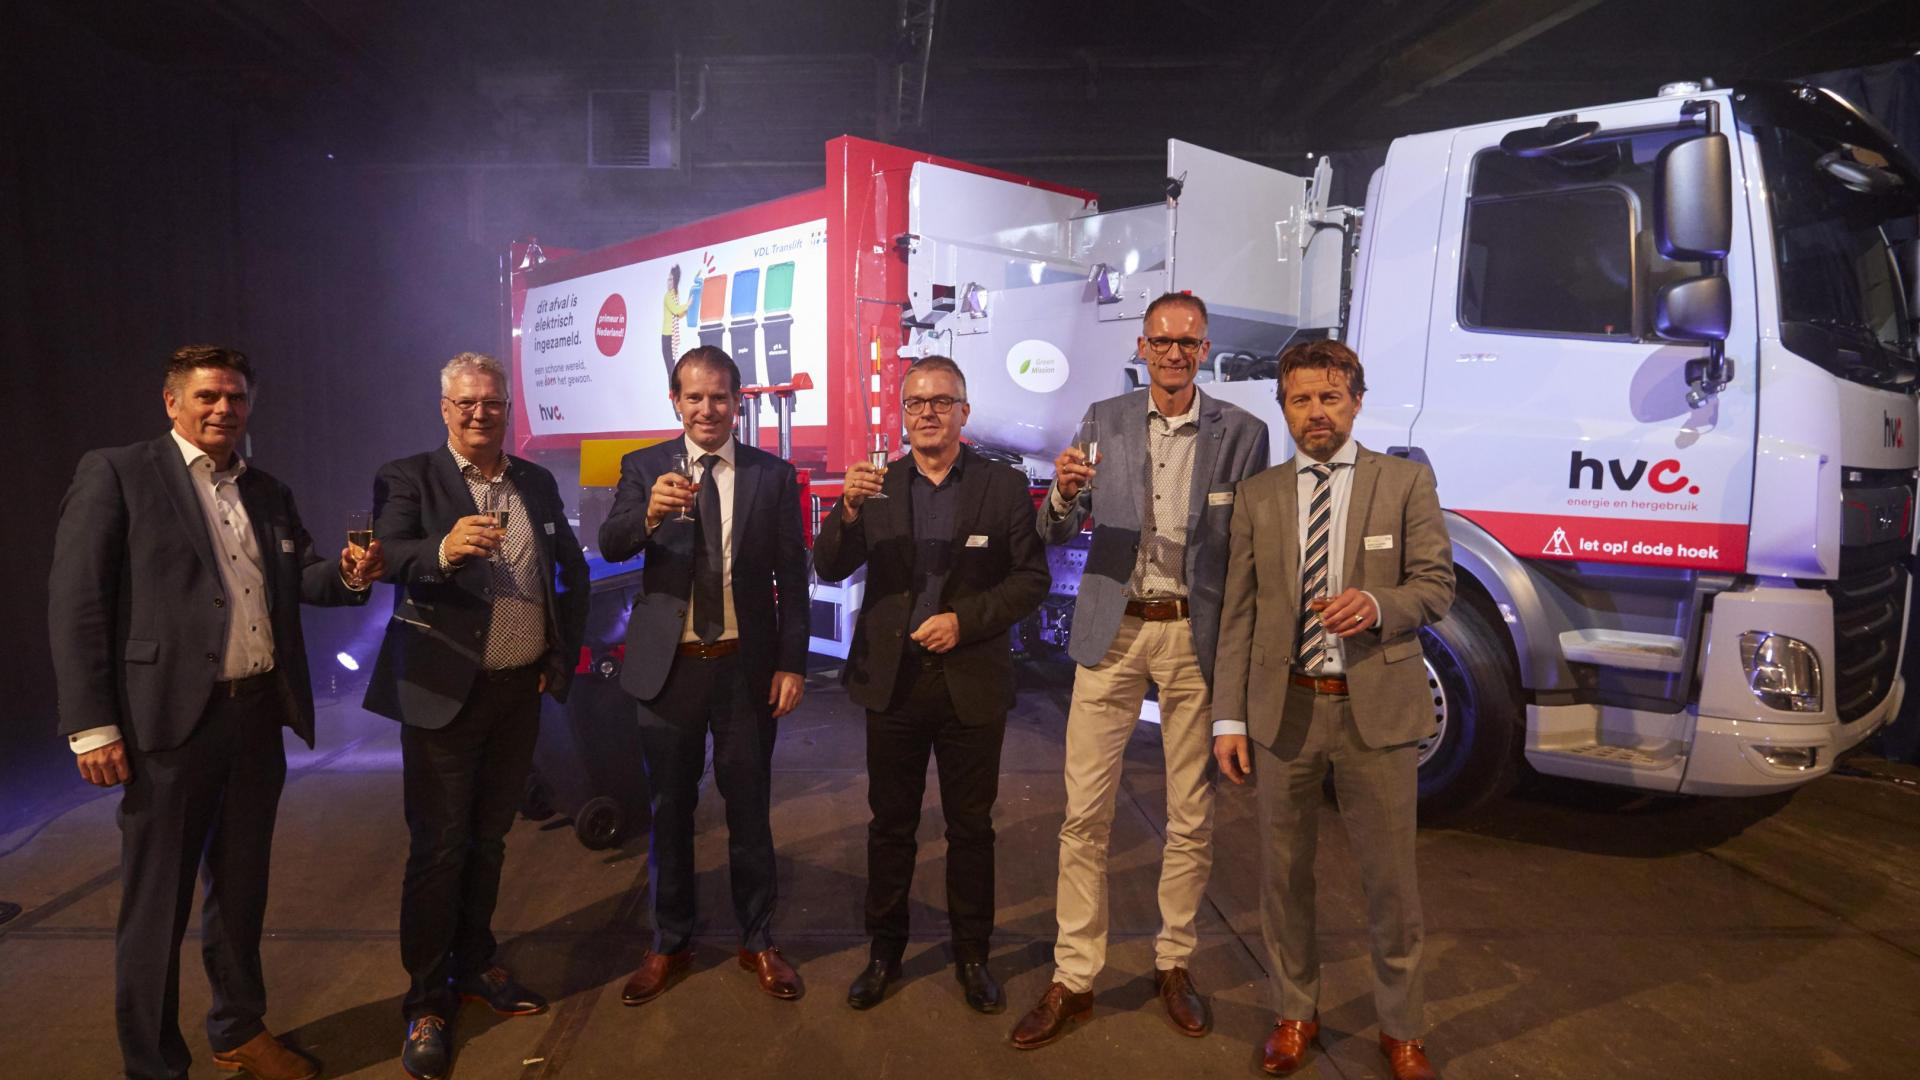 VDL presents first electric vehicles for waste collection